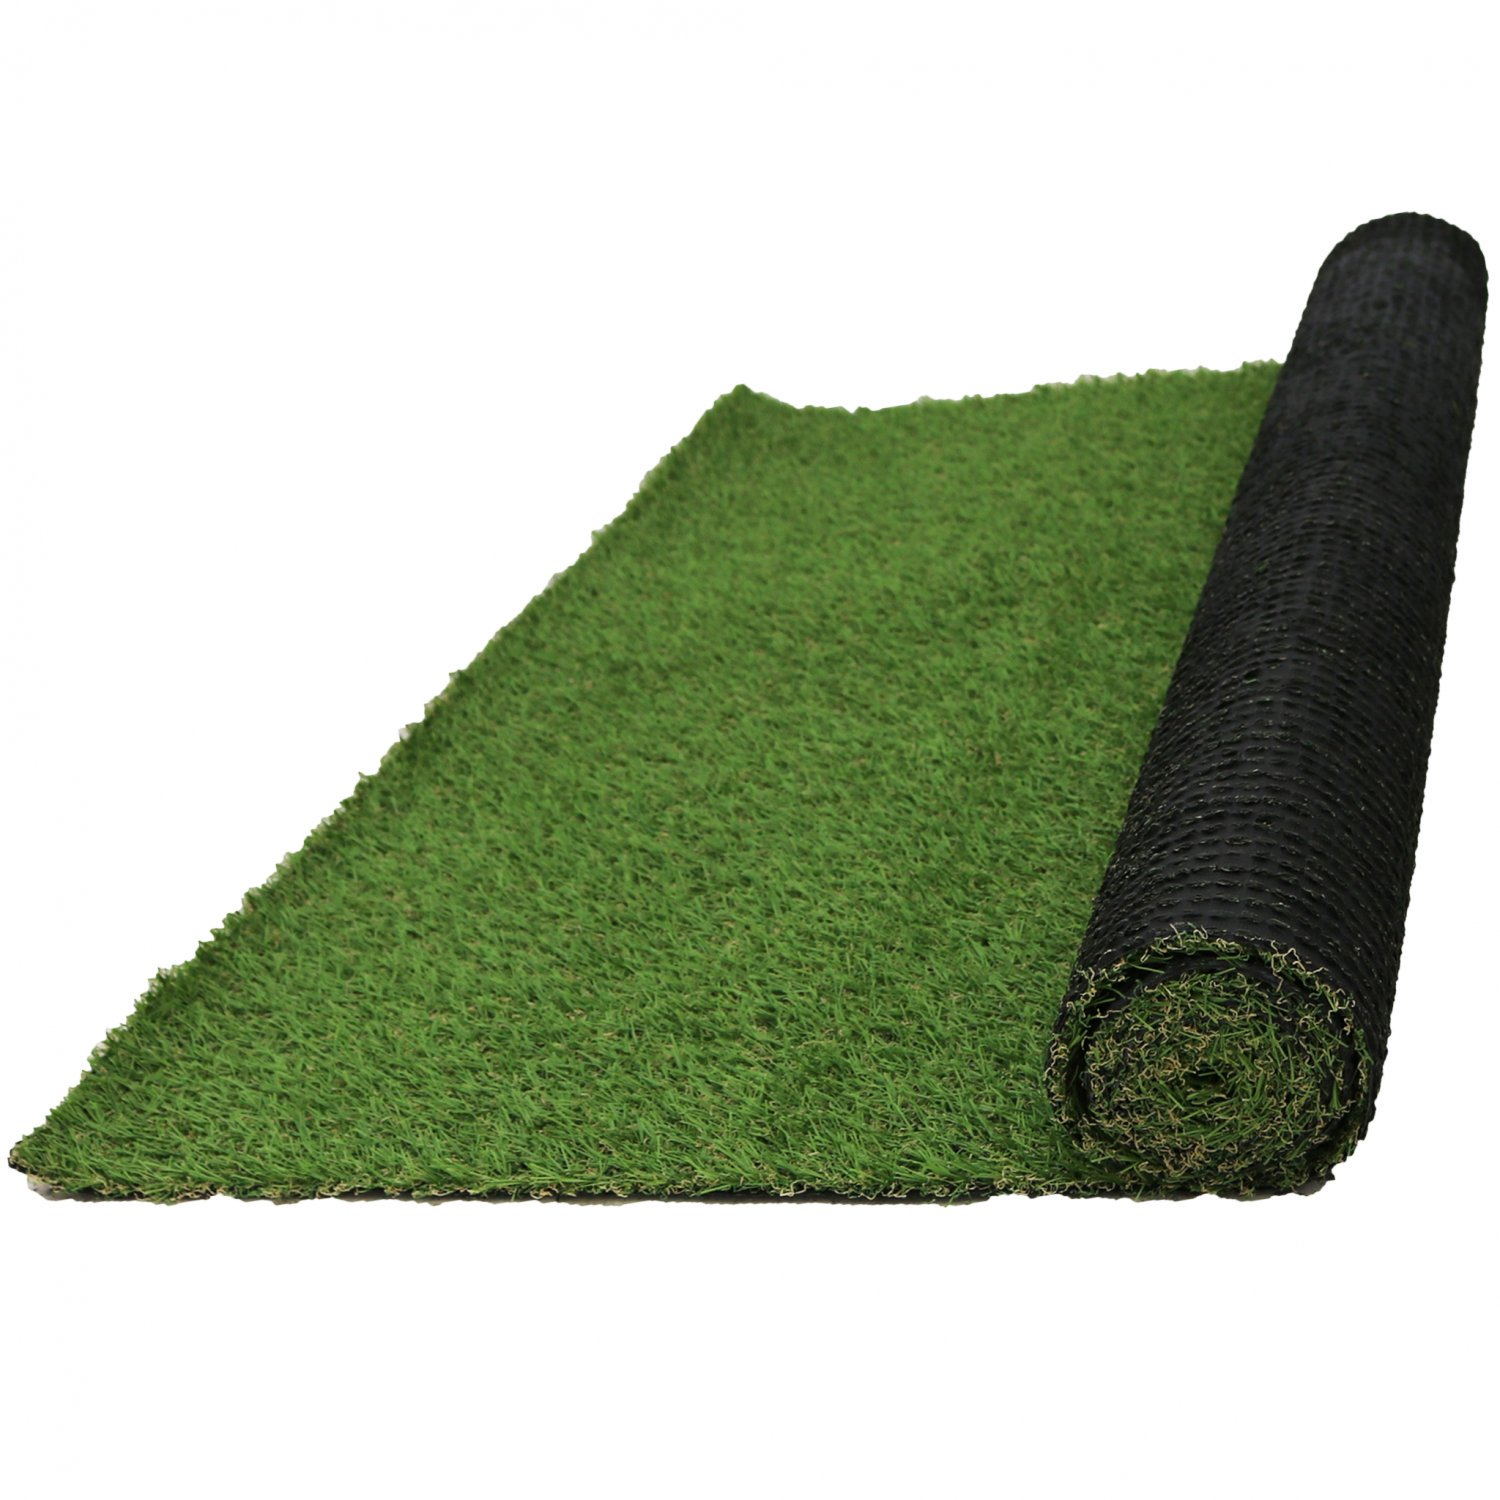 17mm Artificial Grass Mat 6ft x 3ft Greengrocers Fake Turf Lawn